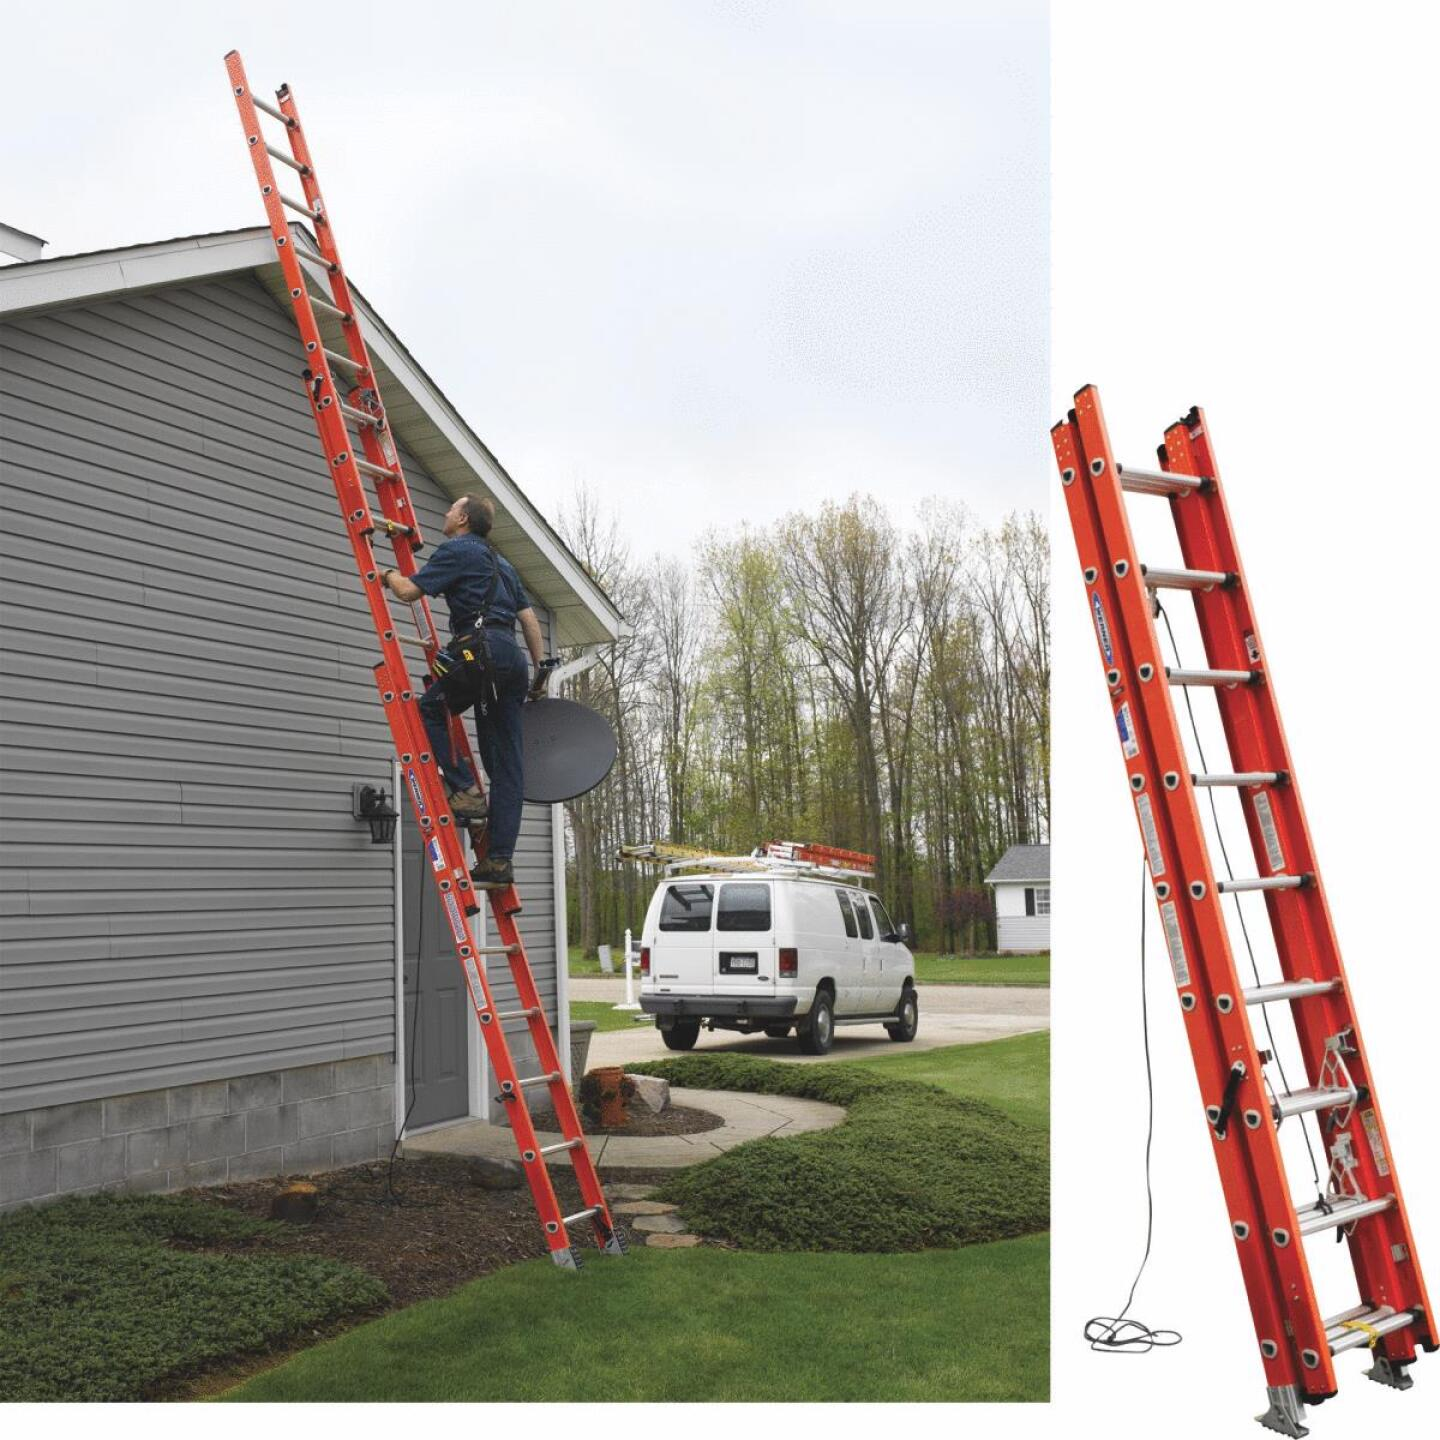 Werner 24 Ft. Compact Fiberglass Extension Ladder with 300 Lb. Load Capacity Type IA Duty Rating Image 1